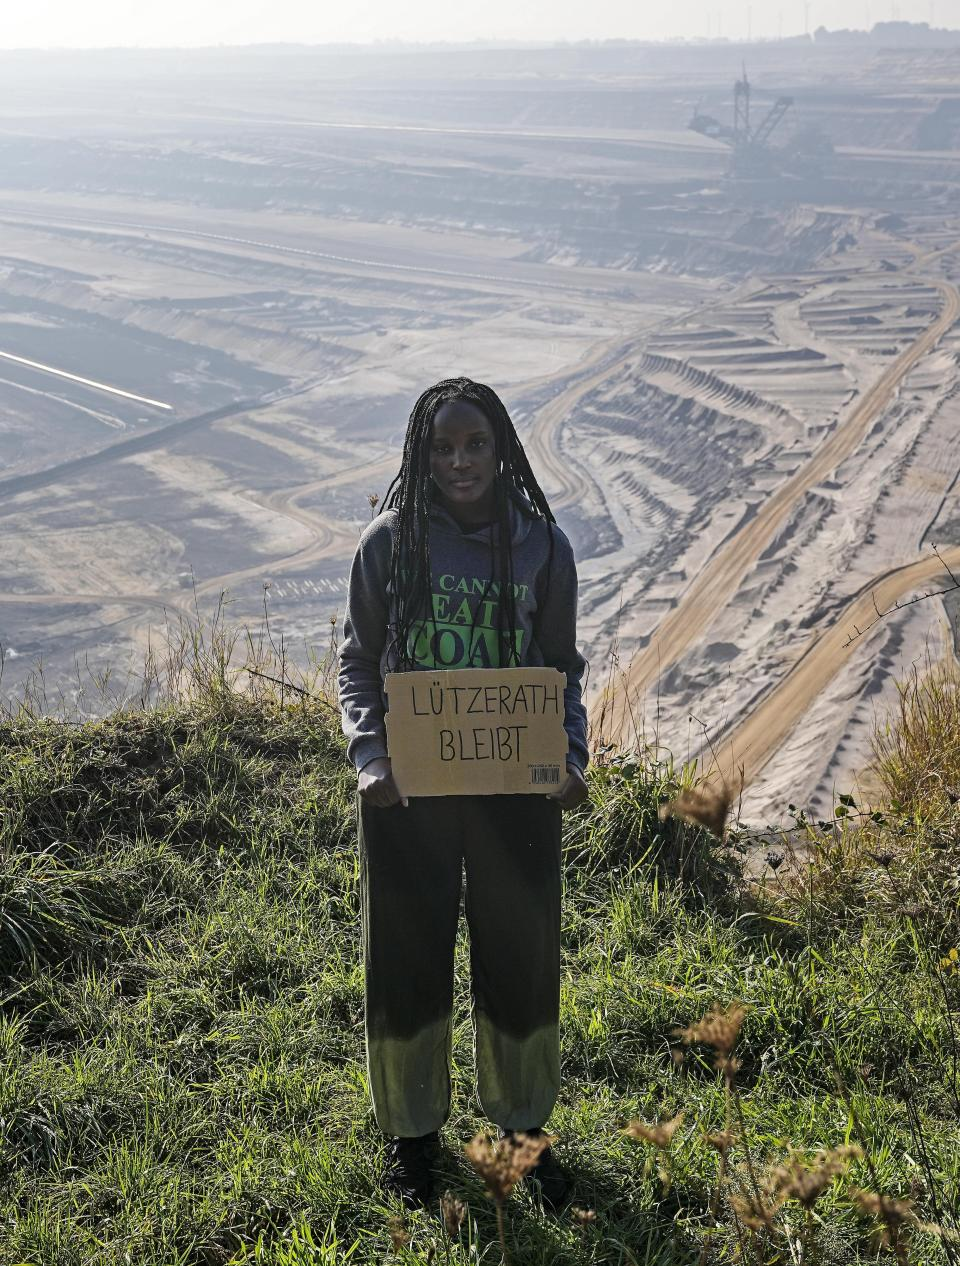 """Climate activist Vanessa Nakate from Uganda holds a sign that reads: """"Luetzerath stays"""" during a visit to the Garzweiler open-cast coal mine in Luetzerath, western Germany, Saturday, Oct. 9, 2021. The village of Luetzerath, now almost entirely abandoned as the mine draws ever closer, will be the latest village to disappear as coal mining at the Garzweiler mine expands. Garzweiler, operated by utility giant RWE, has become a focus of protests by people who want Germany to stop extracting and burning coal as soon as possible. (AP Photo/Martin Meissner)"""